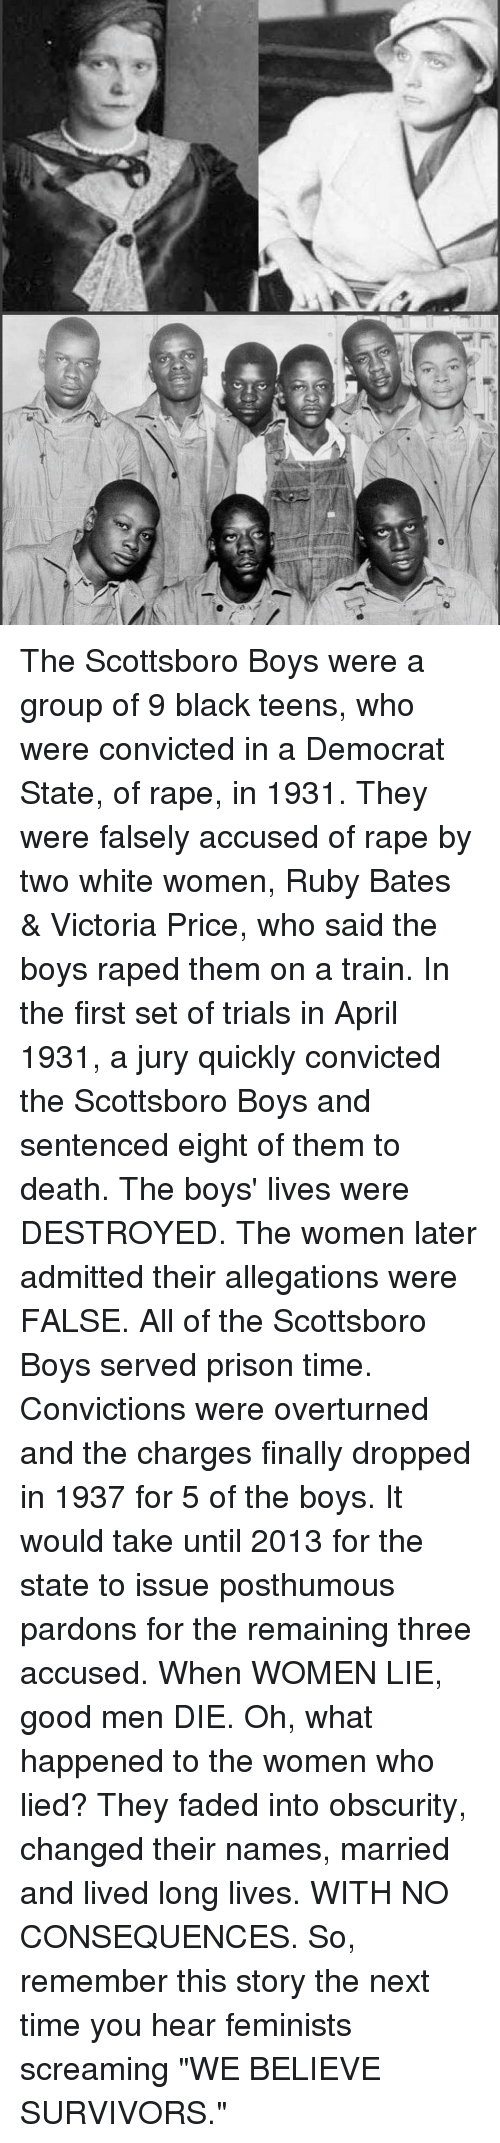 """no consequences: The Scottsboro Boys were a group of 9 black teens, who were convicted in a Democrat State, of rape, in 1931. They were falsely accused of rape by two white women, Ruby Bates & Victoria Price, who said the boys raped them on a train. In the first set of trials in April 1931, a jury quickly convicted the Scottsboro Boys and sentenced eight of them to death. The boys' lives were DESTROYED. The women later admitted their allegations were FALSE. All of the Scottsboro Boys served prison time. Convictions were overturned and the charges finally dropped in 1937 for 5 of the boys. It would take until 2013 for the state to issue posthumous pardons for the remaining three accused. When WOMEN LIE, good men DIE. Oh, what happened to the women who lied? They faded into obscurity, changed their names, married and lived long lives. WITH NO CONSEQUENCES. So, remember this story the next time you hear feminists screaming """"WE BELIEVE SURVIVORS."""""""